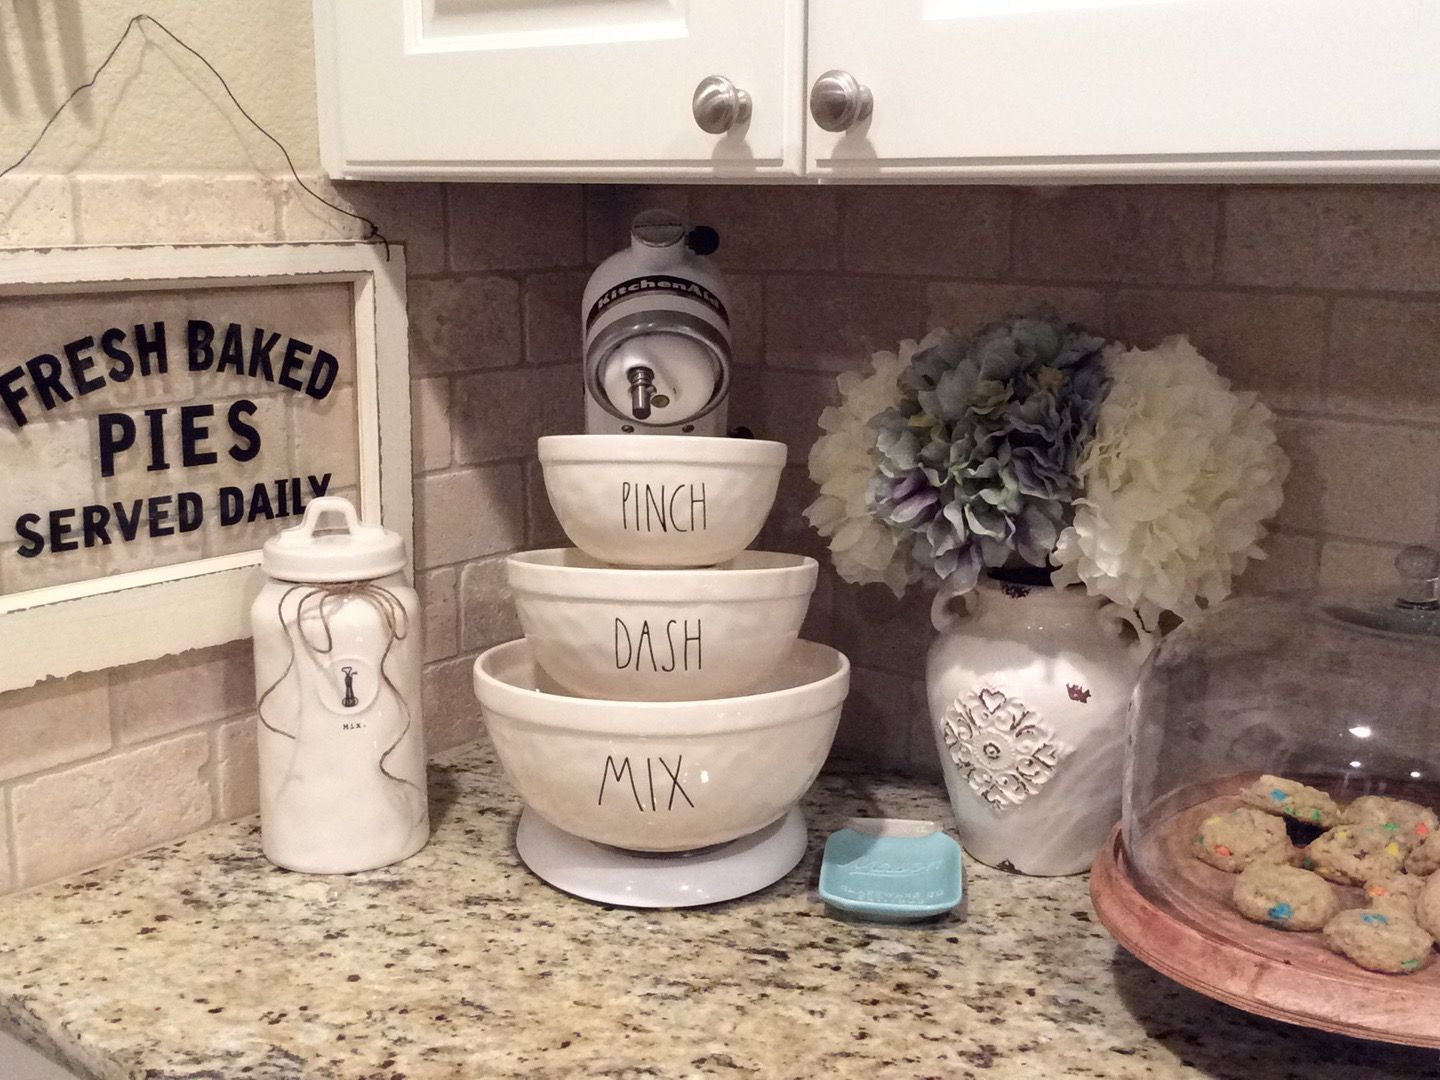 my rae dunn mixing bowl display kitchen decor home decor home